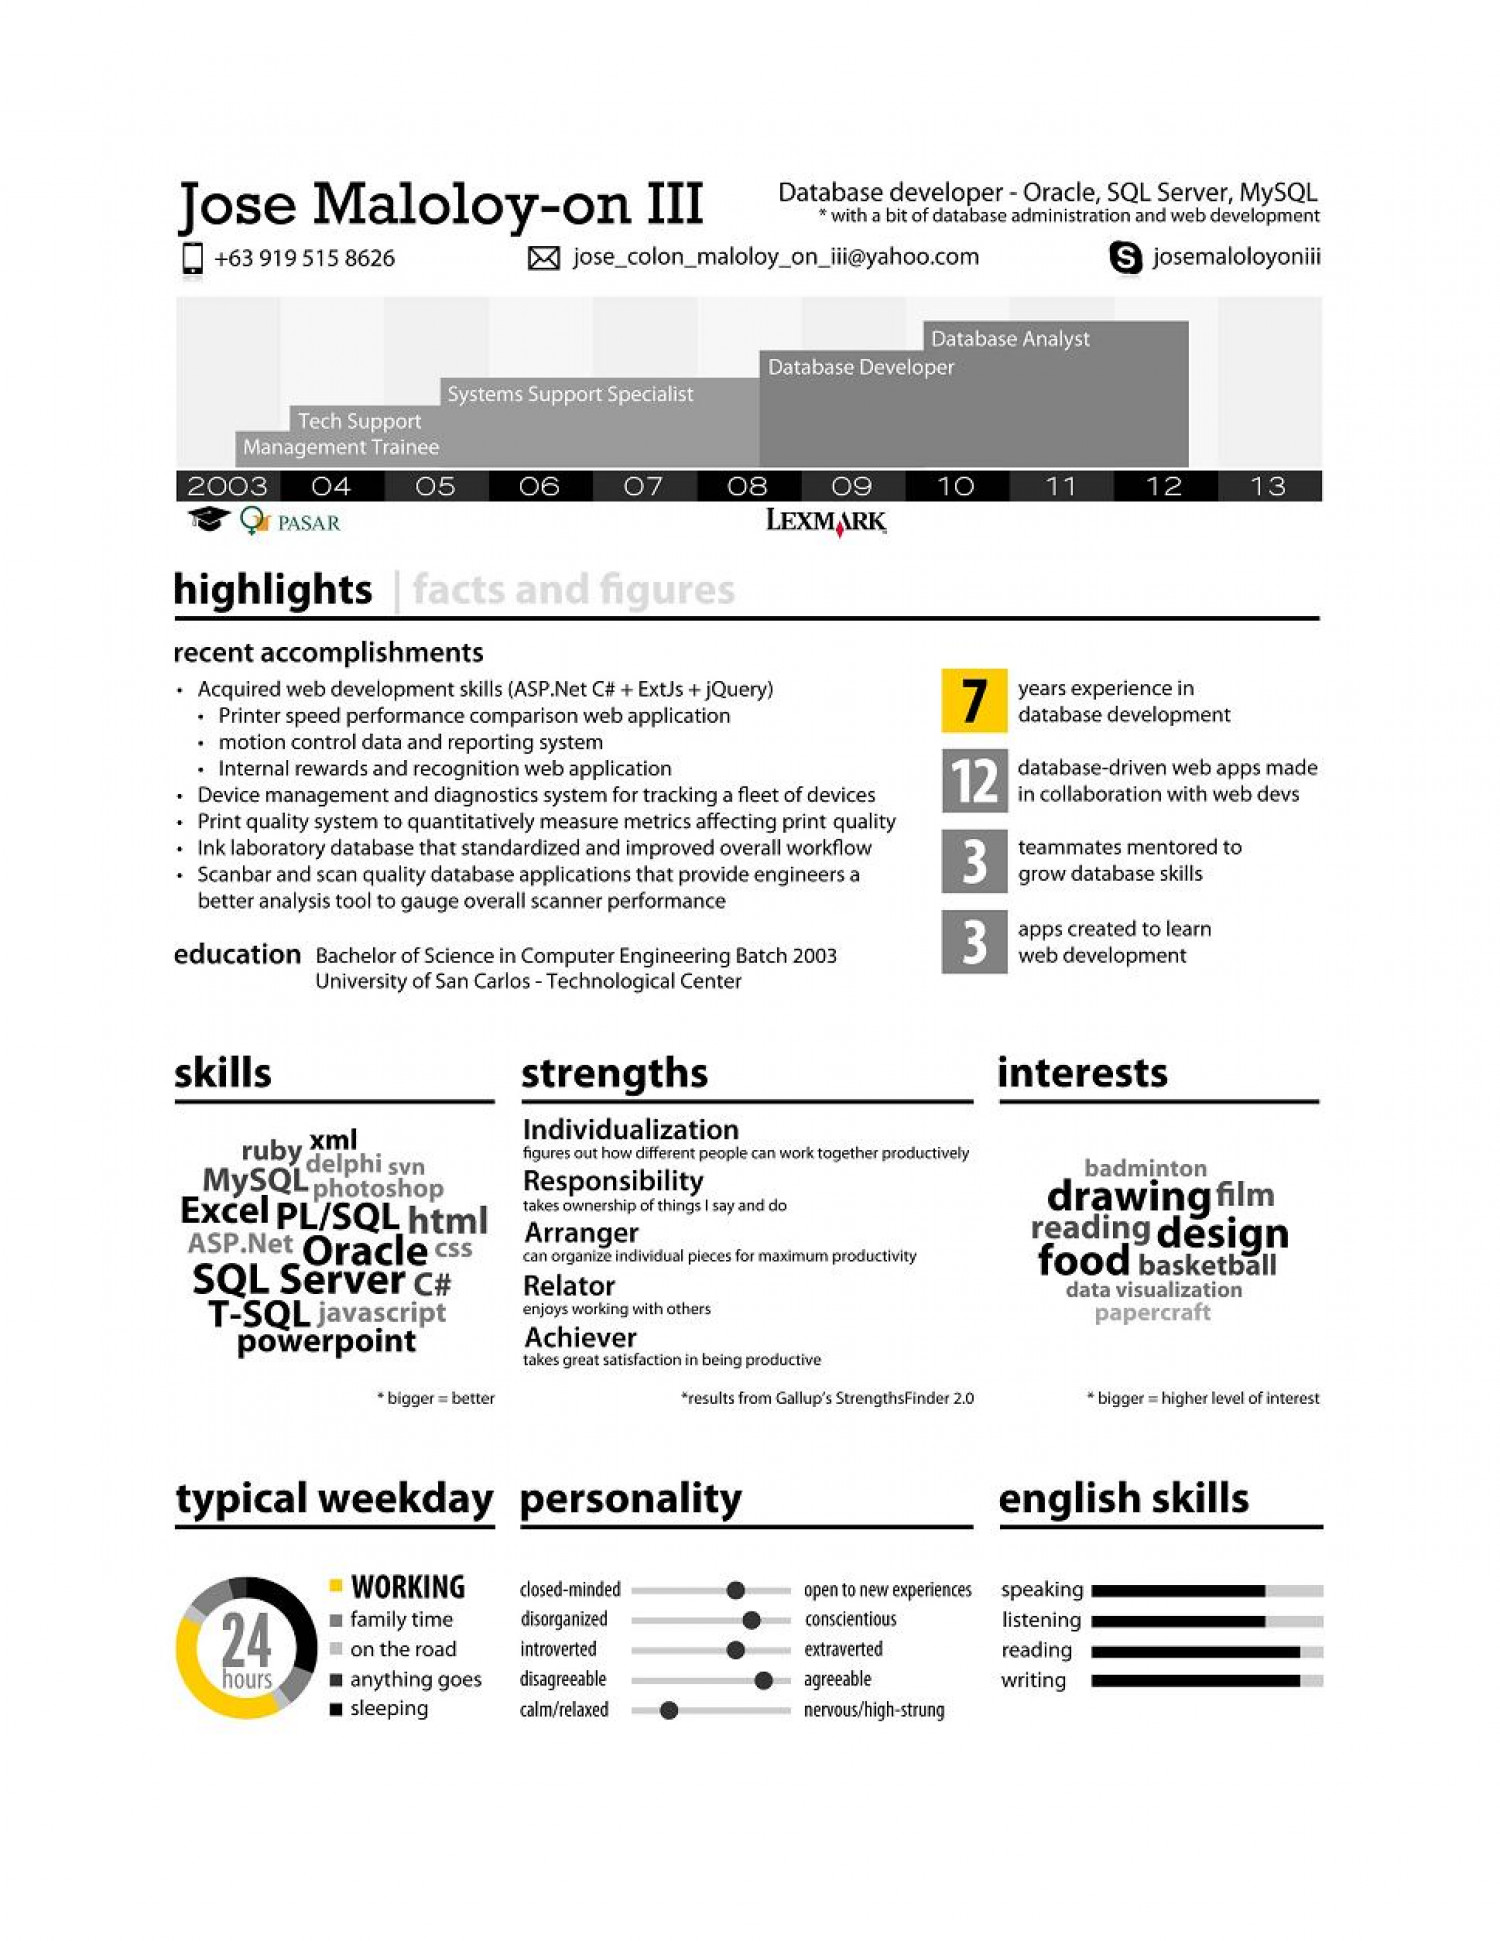 Infographic Resume - Jose Maloloy-on III Infographic